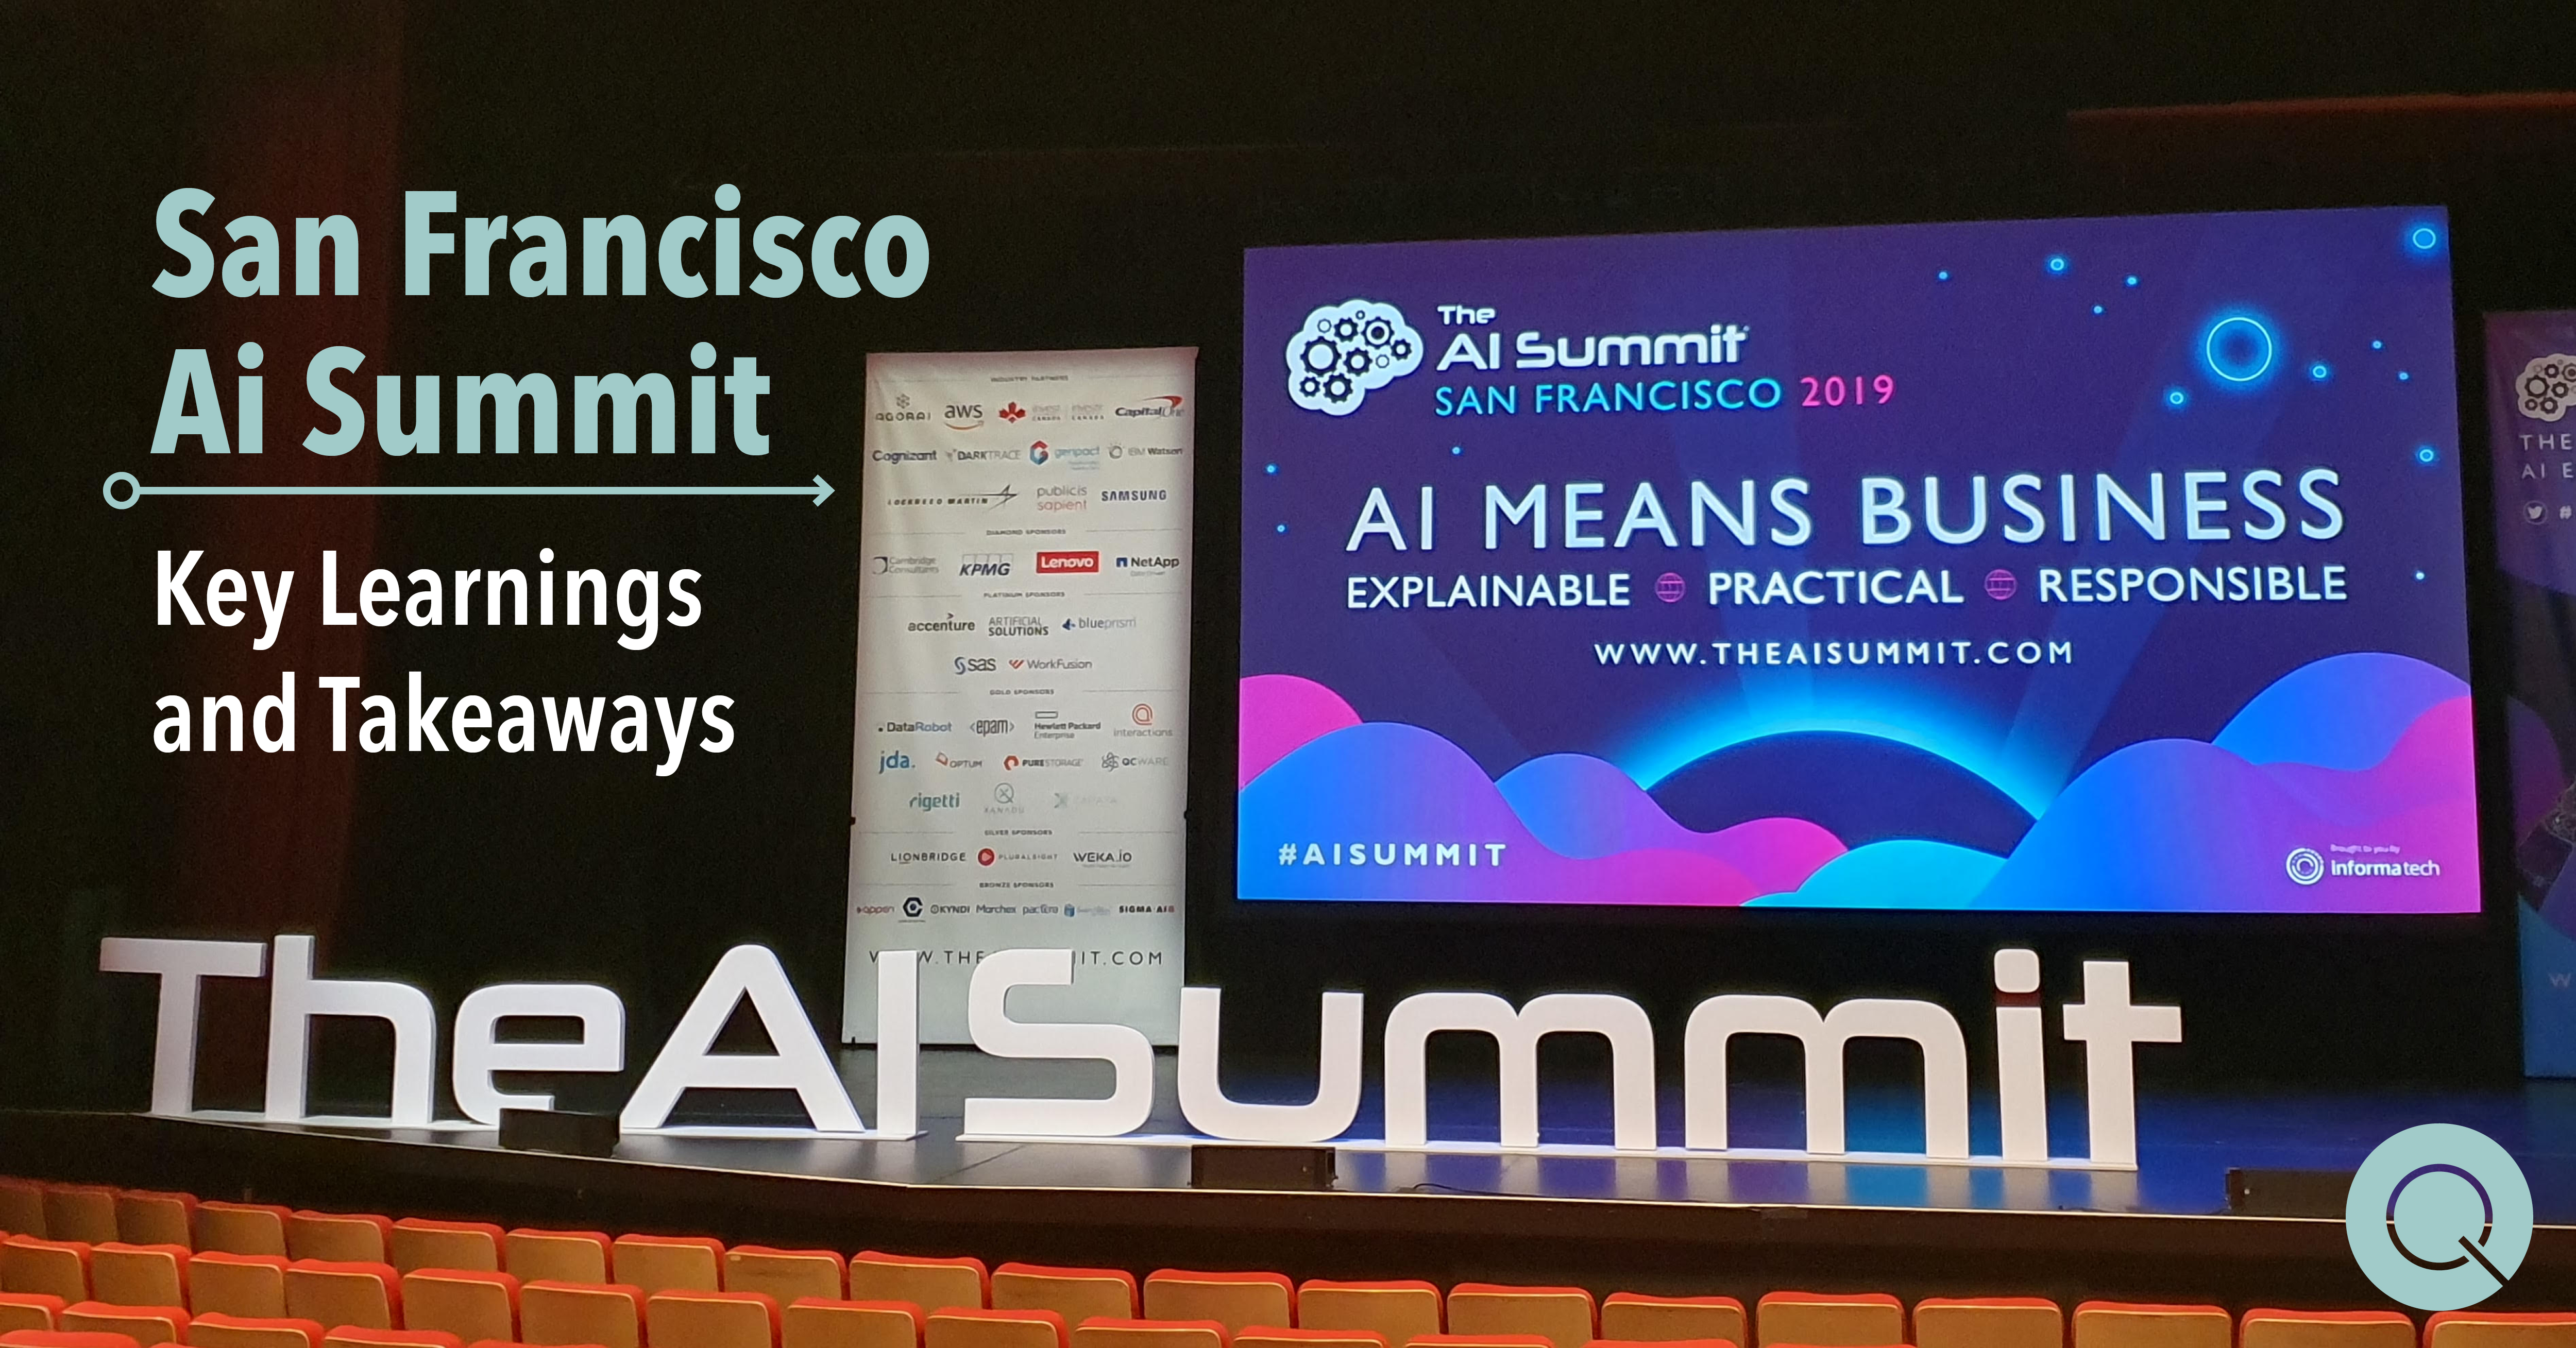 Ai Summit San Francisco Key Learning and Takeaway